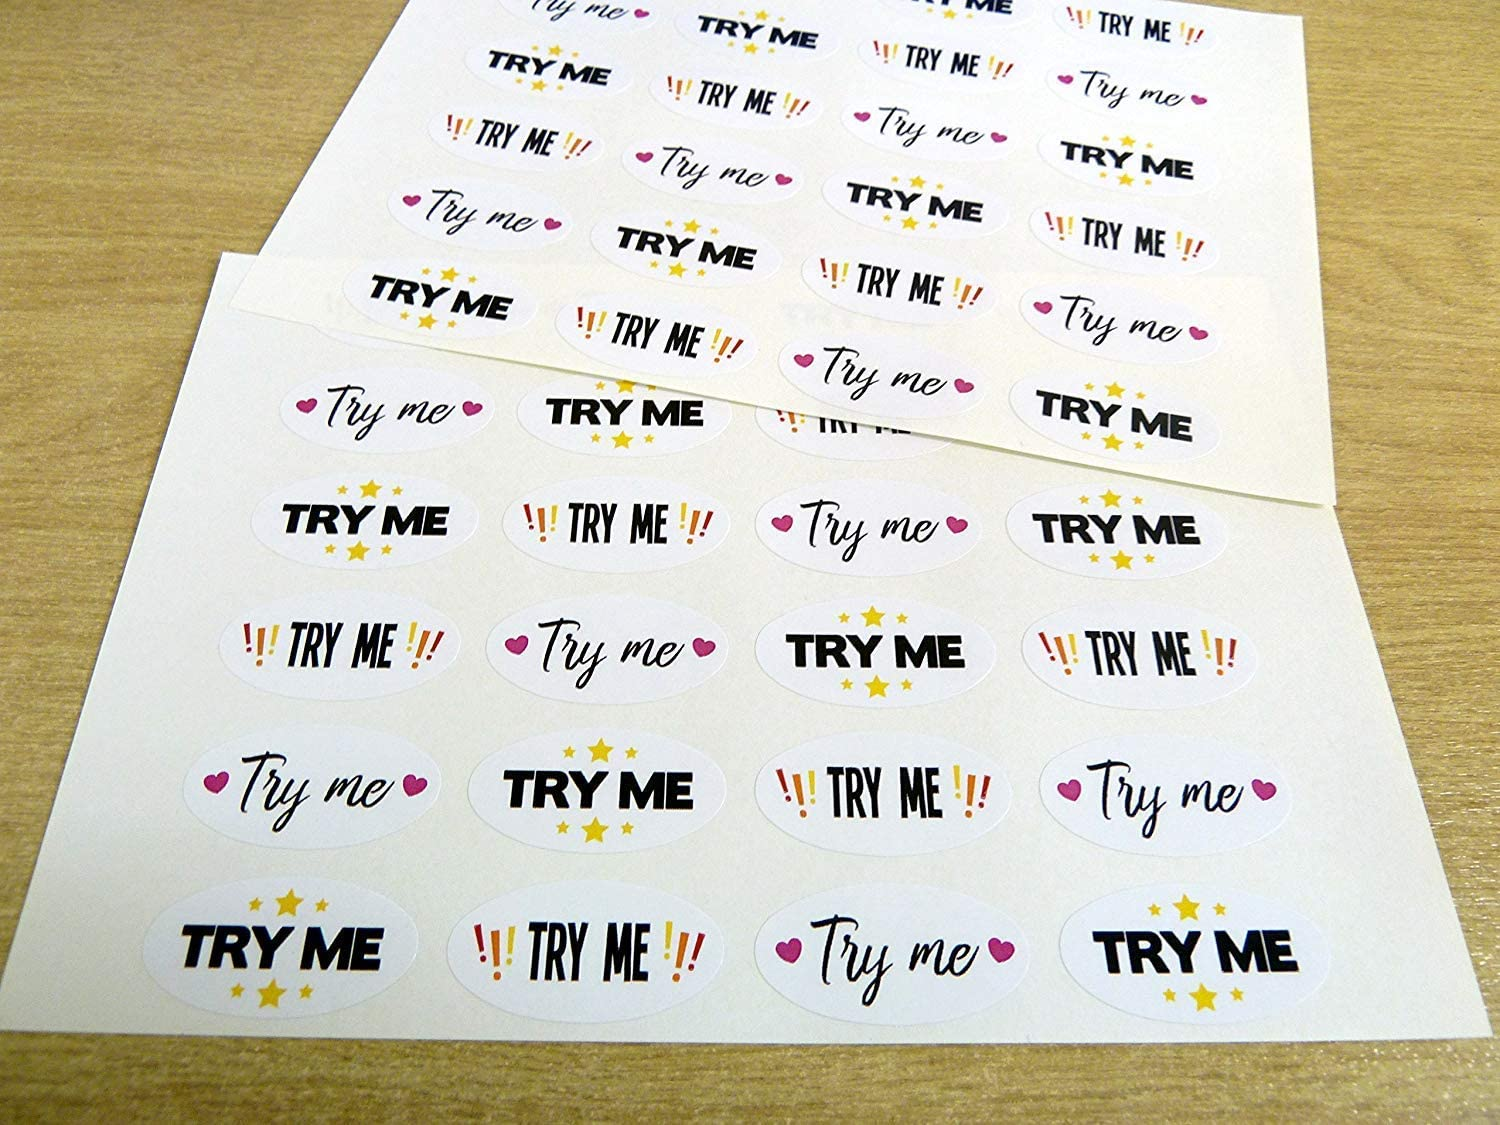 /'TRY ME/' Stickers Colourful Promotional Retail Labels for Craft Stalls Samples